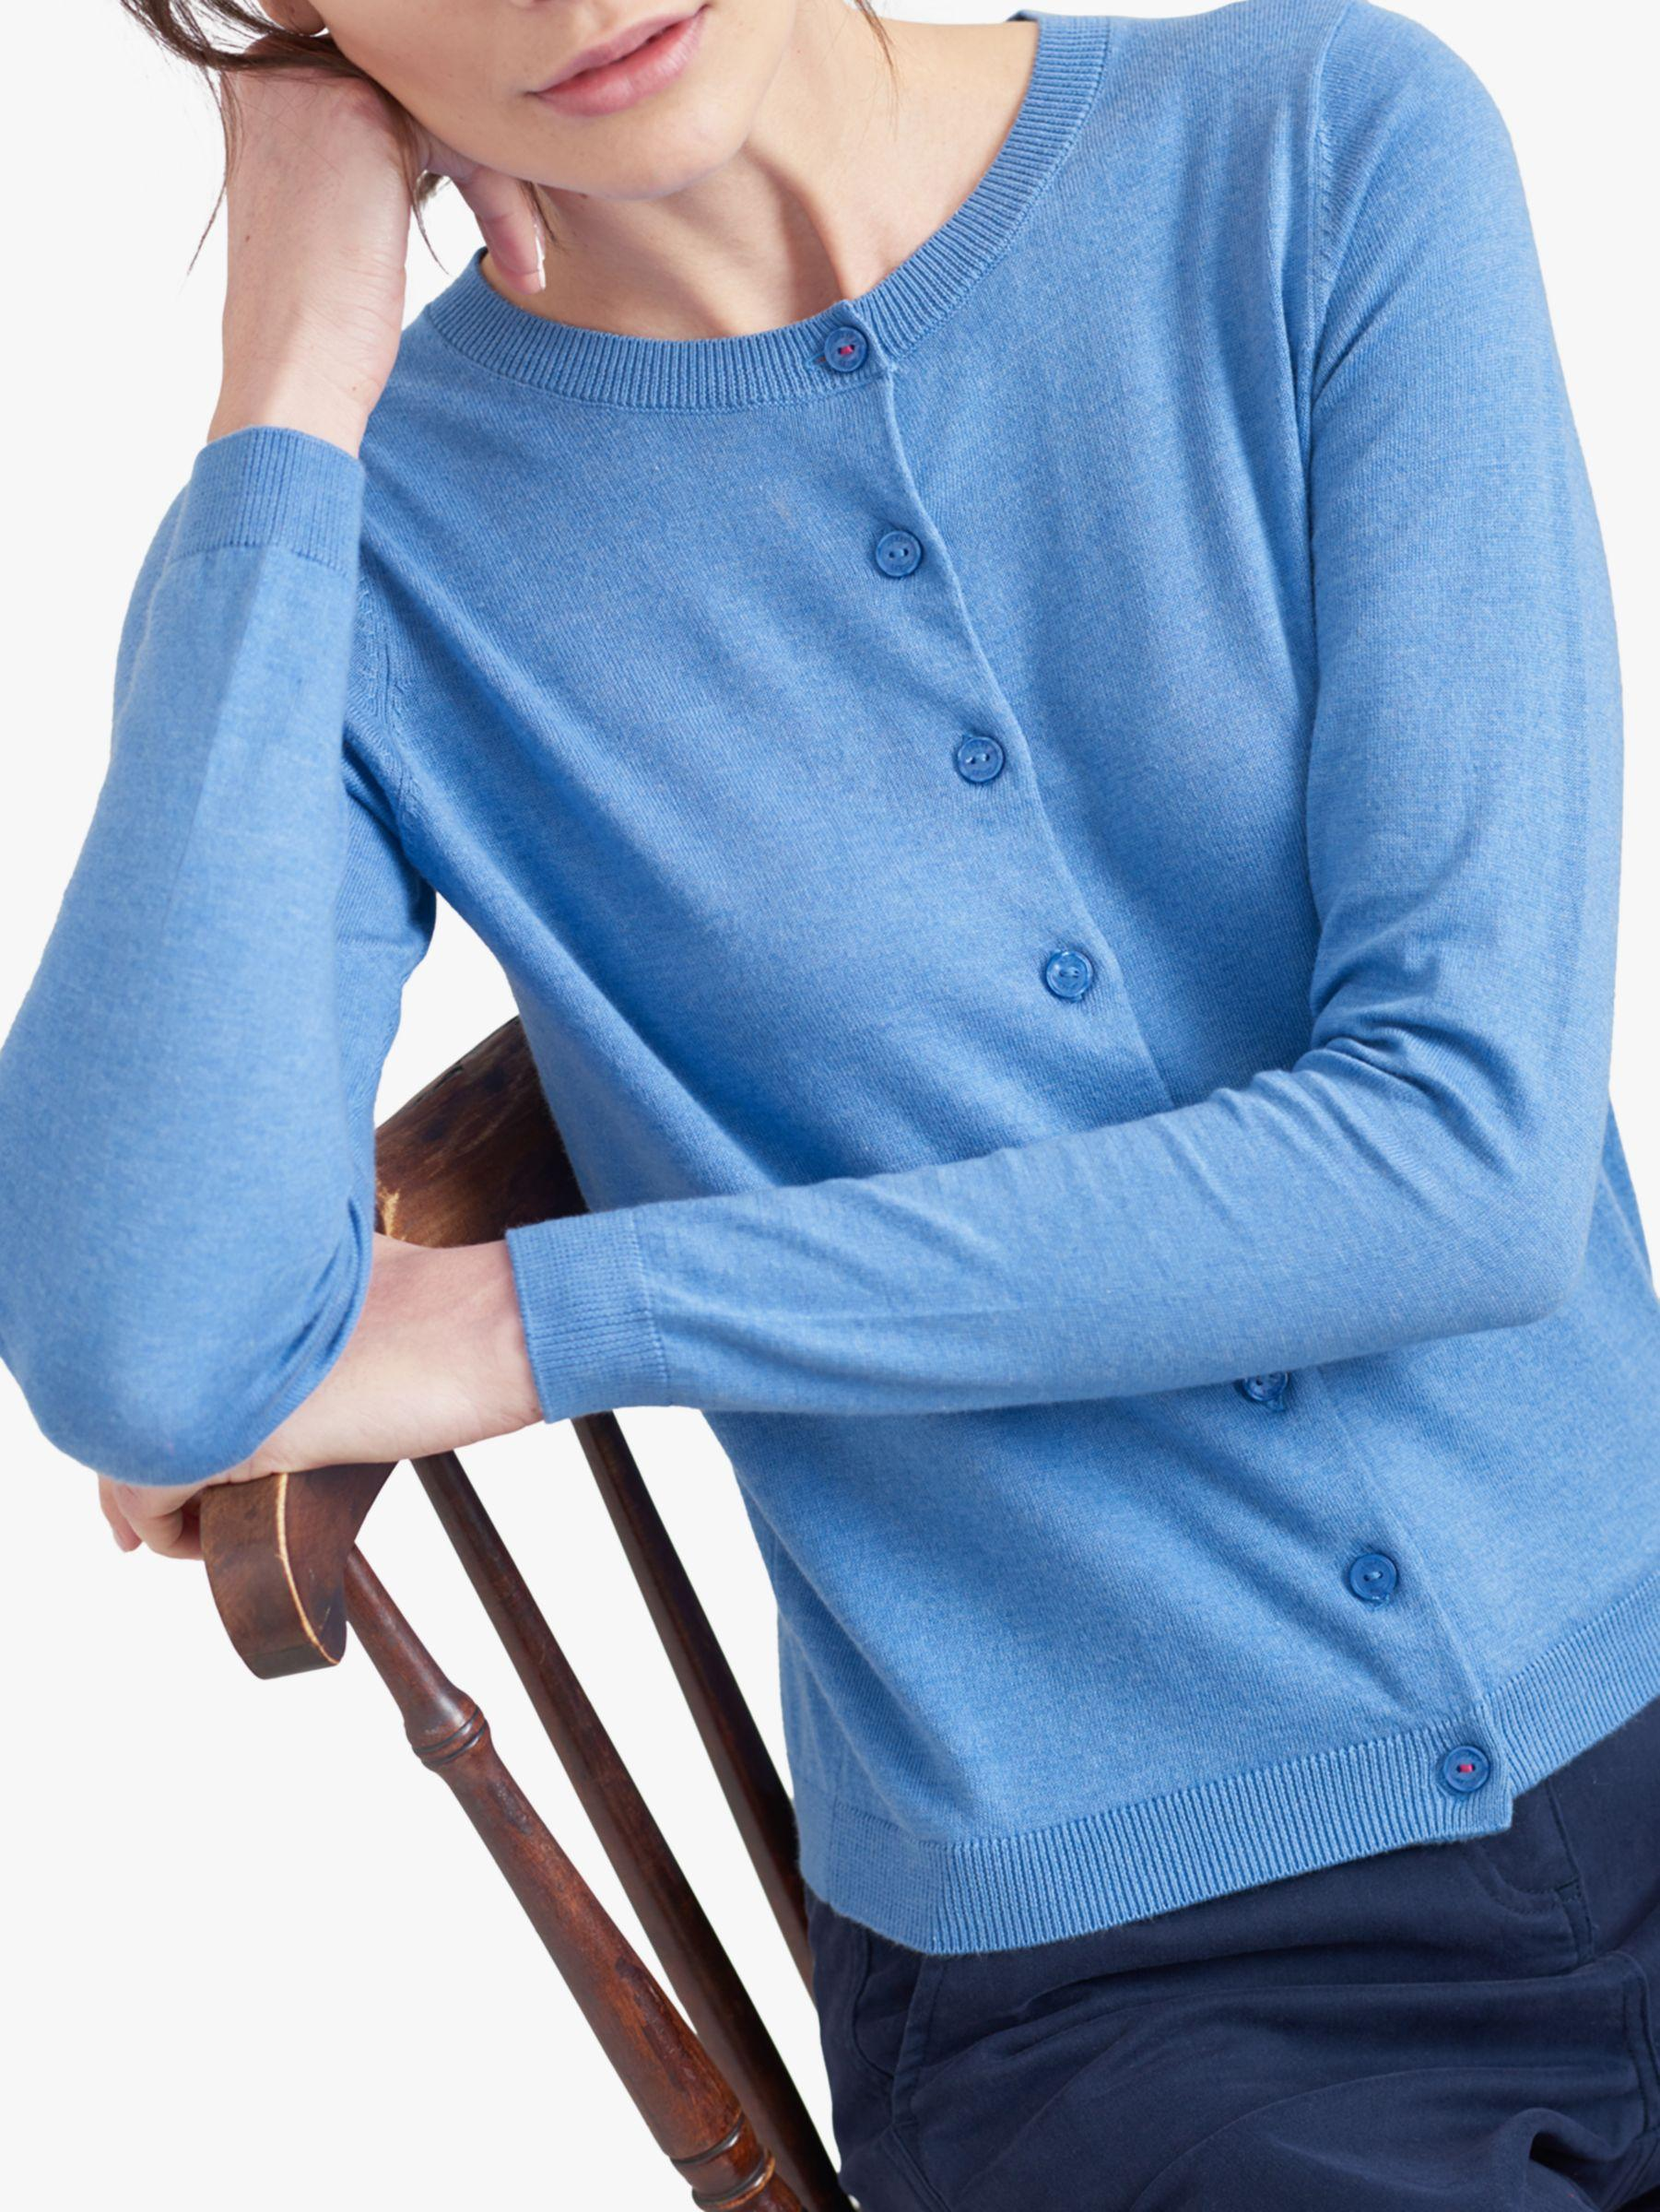 Joules Skye Button Front Cardigan in Blue - Lyst 69498595d